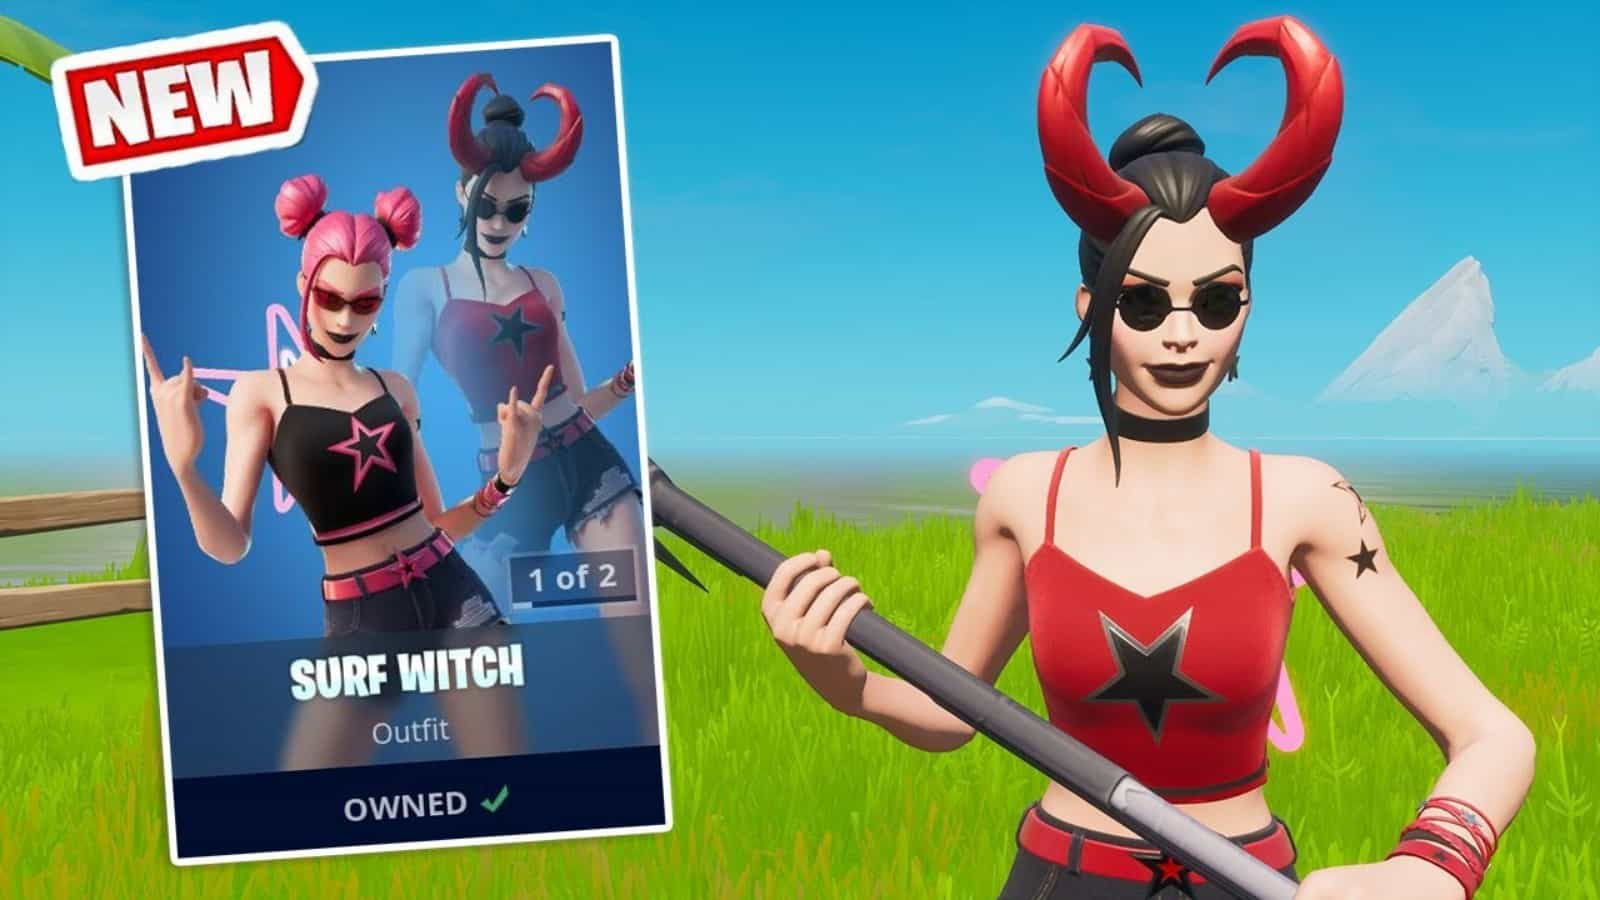 How to Get New Fortnite Surf Witch Skin in Fortnite Season 7